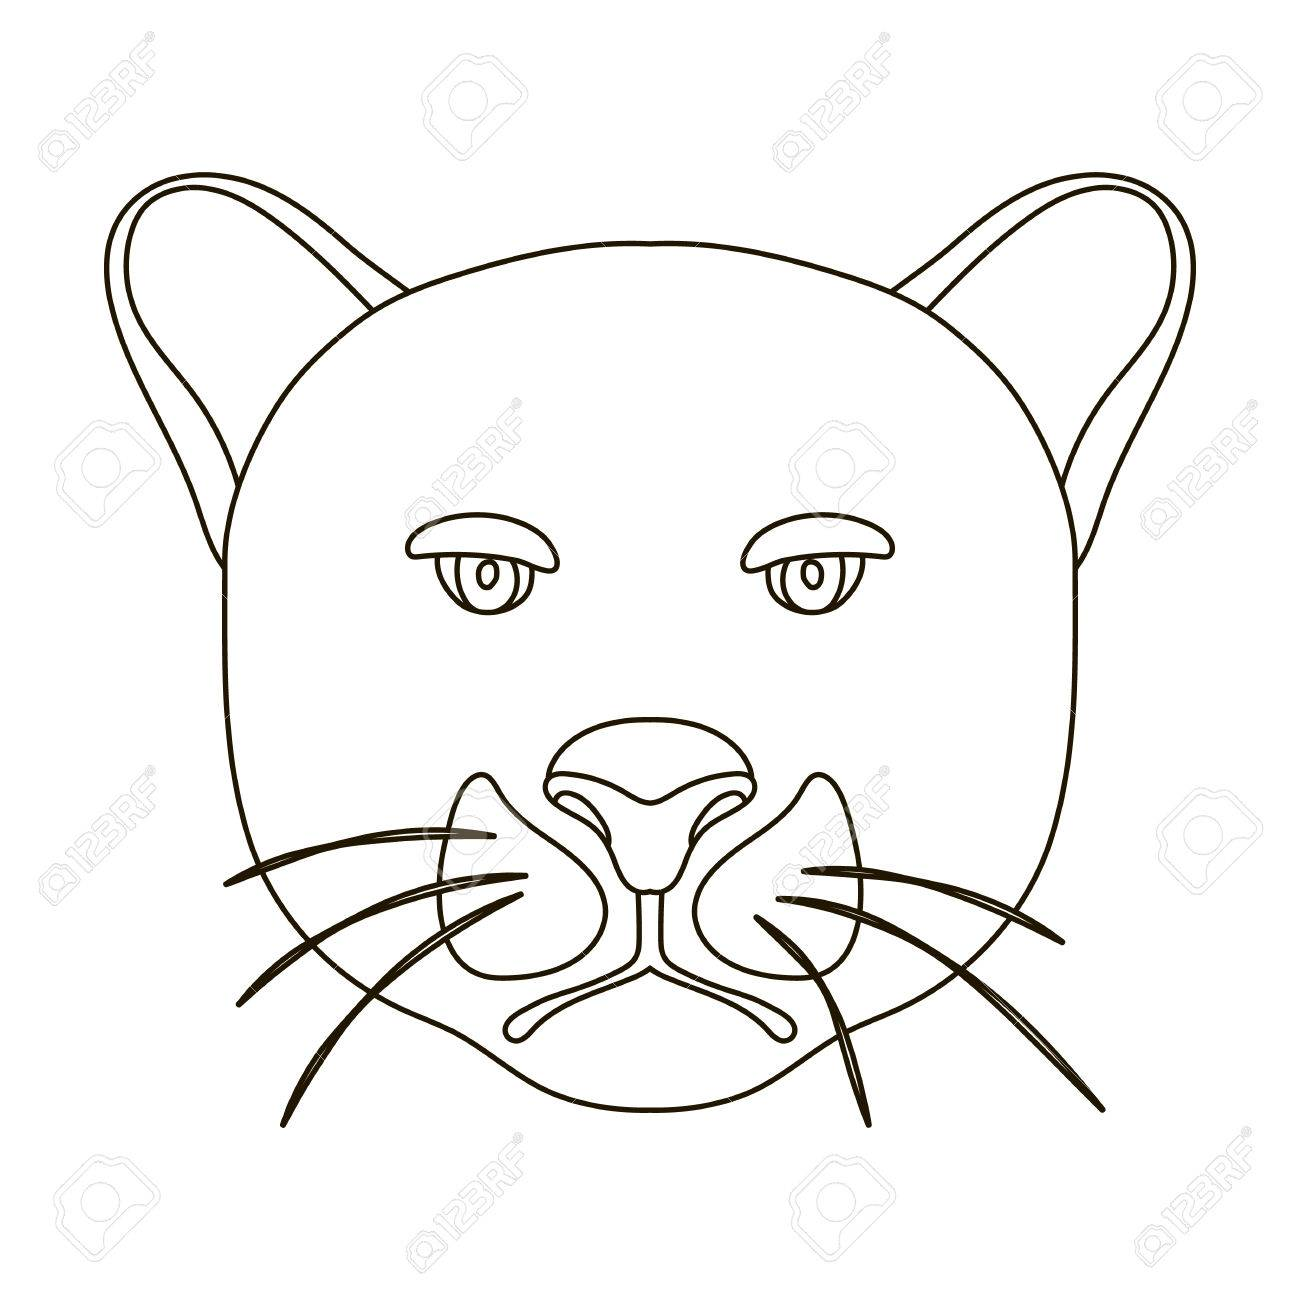 Black panther icon in outline style isolated on white background realistic animals symbol stock vector